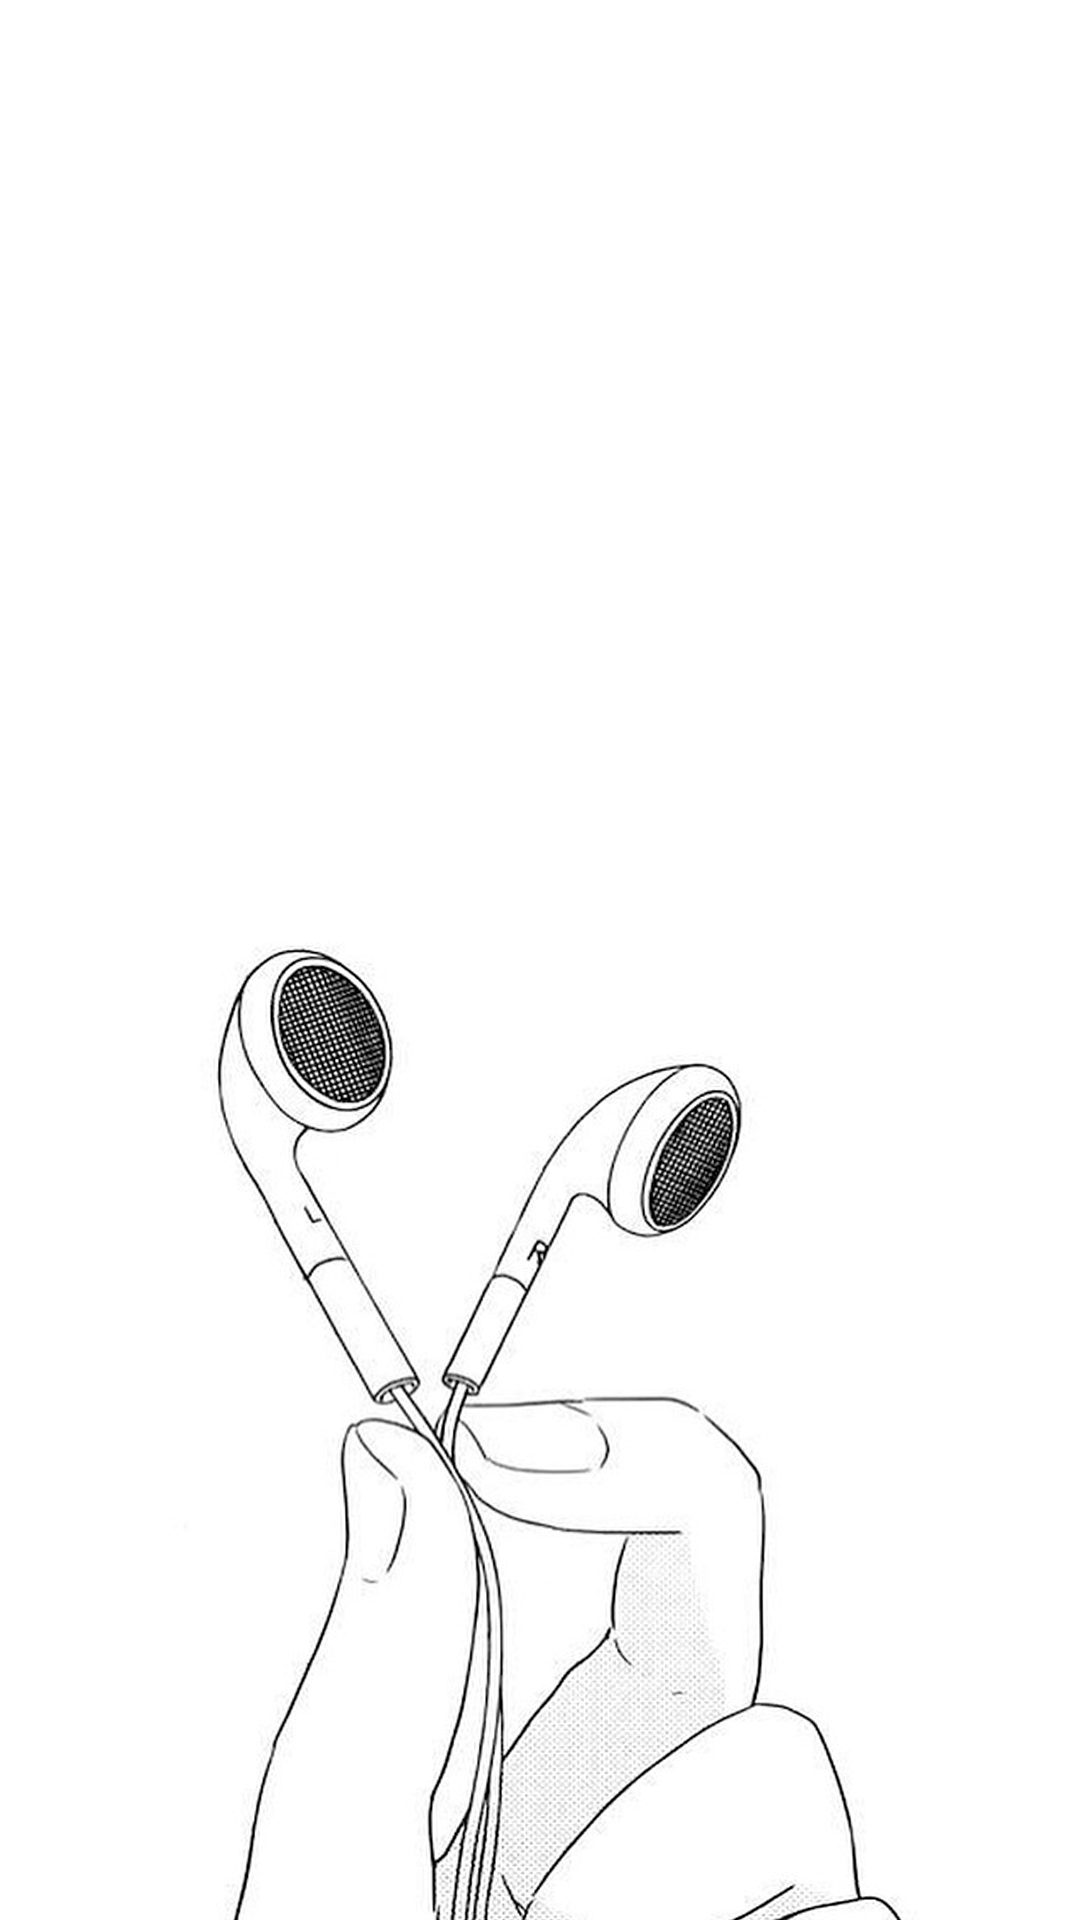 Iphone 5 wallpaper tumblr music - Earphones I Use For Music And Music Is Life